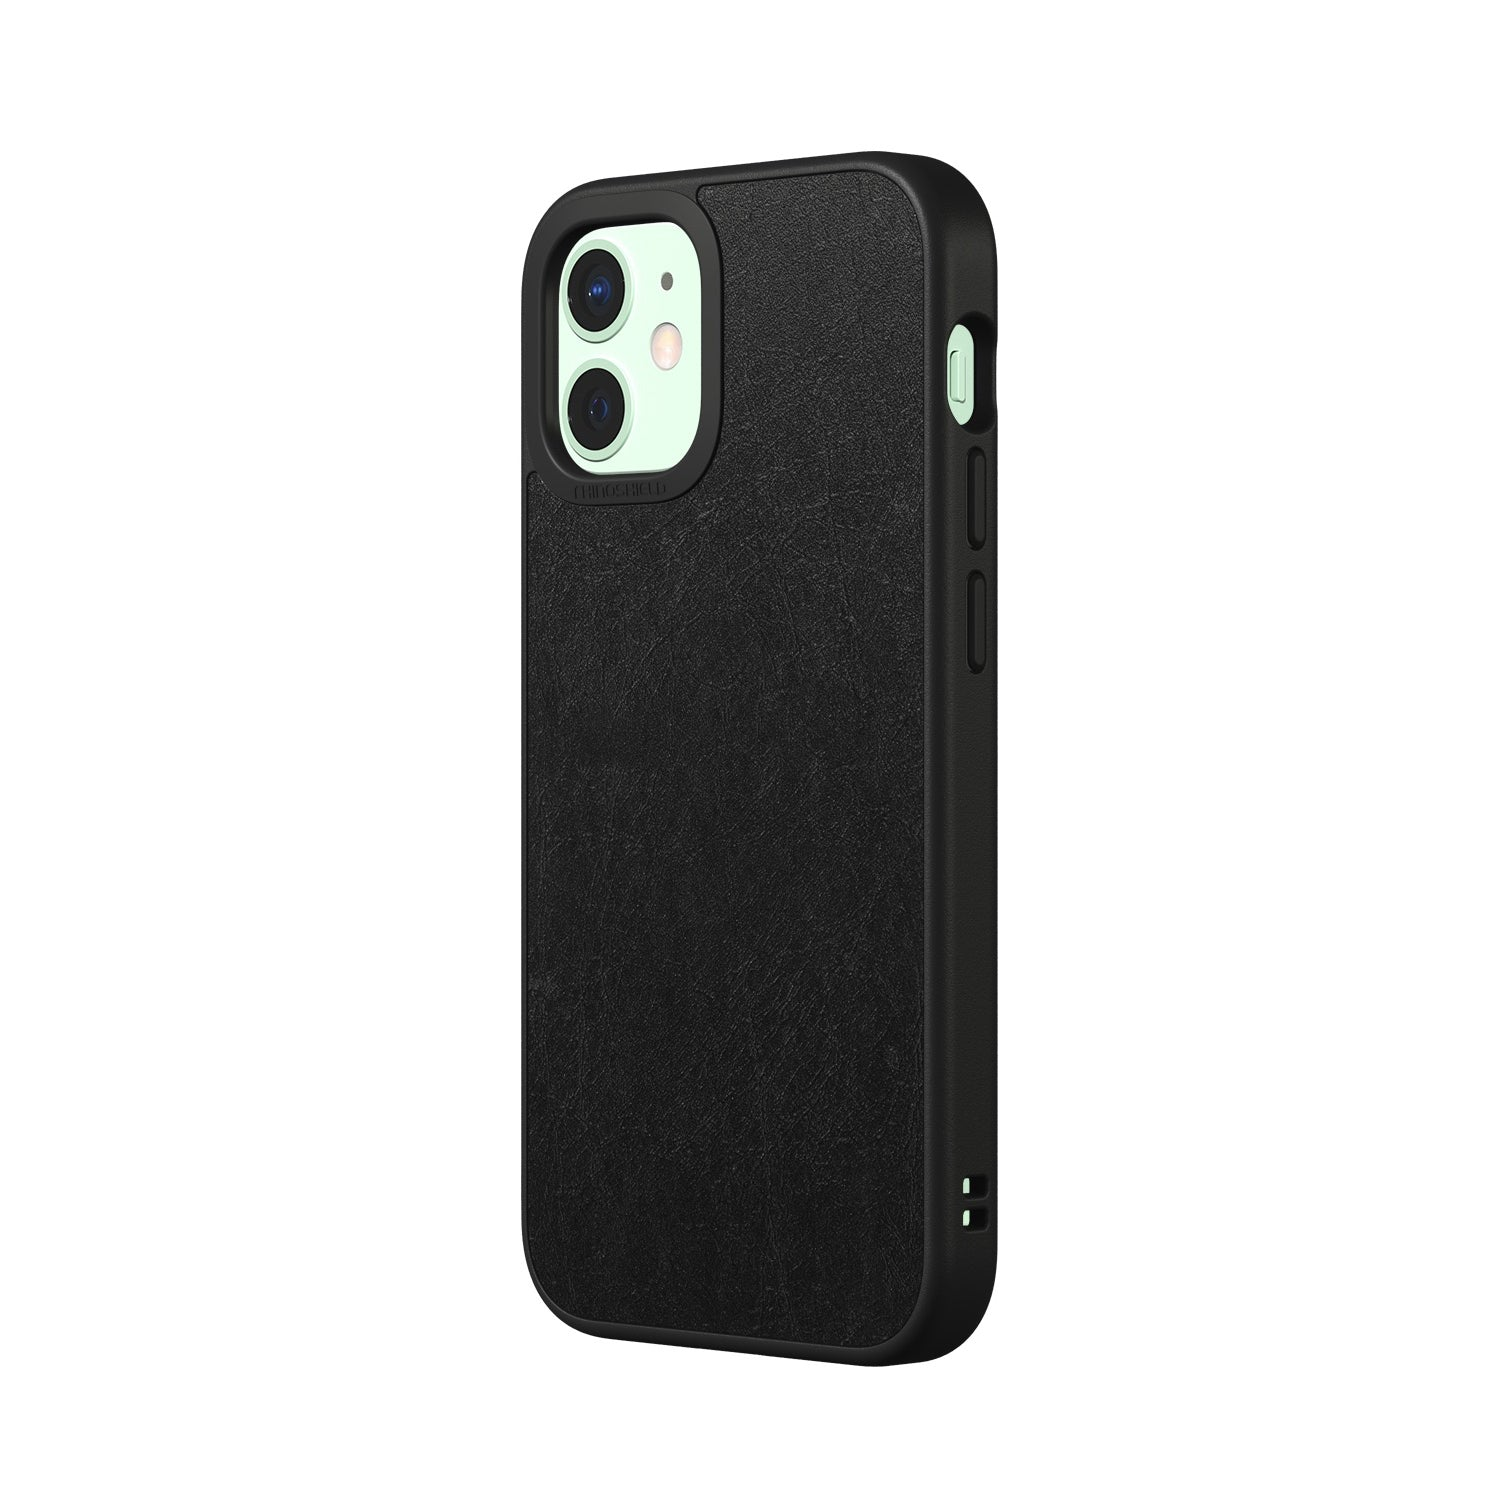 RhinoShield SolidSuit Rugged Case For iPhone 12 mini - Genuine Leather